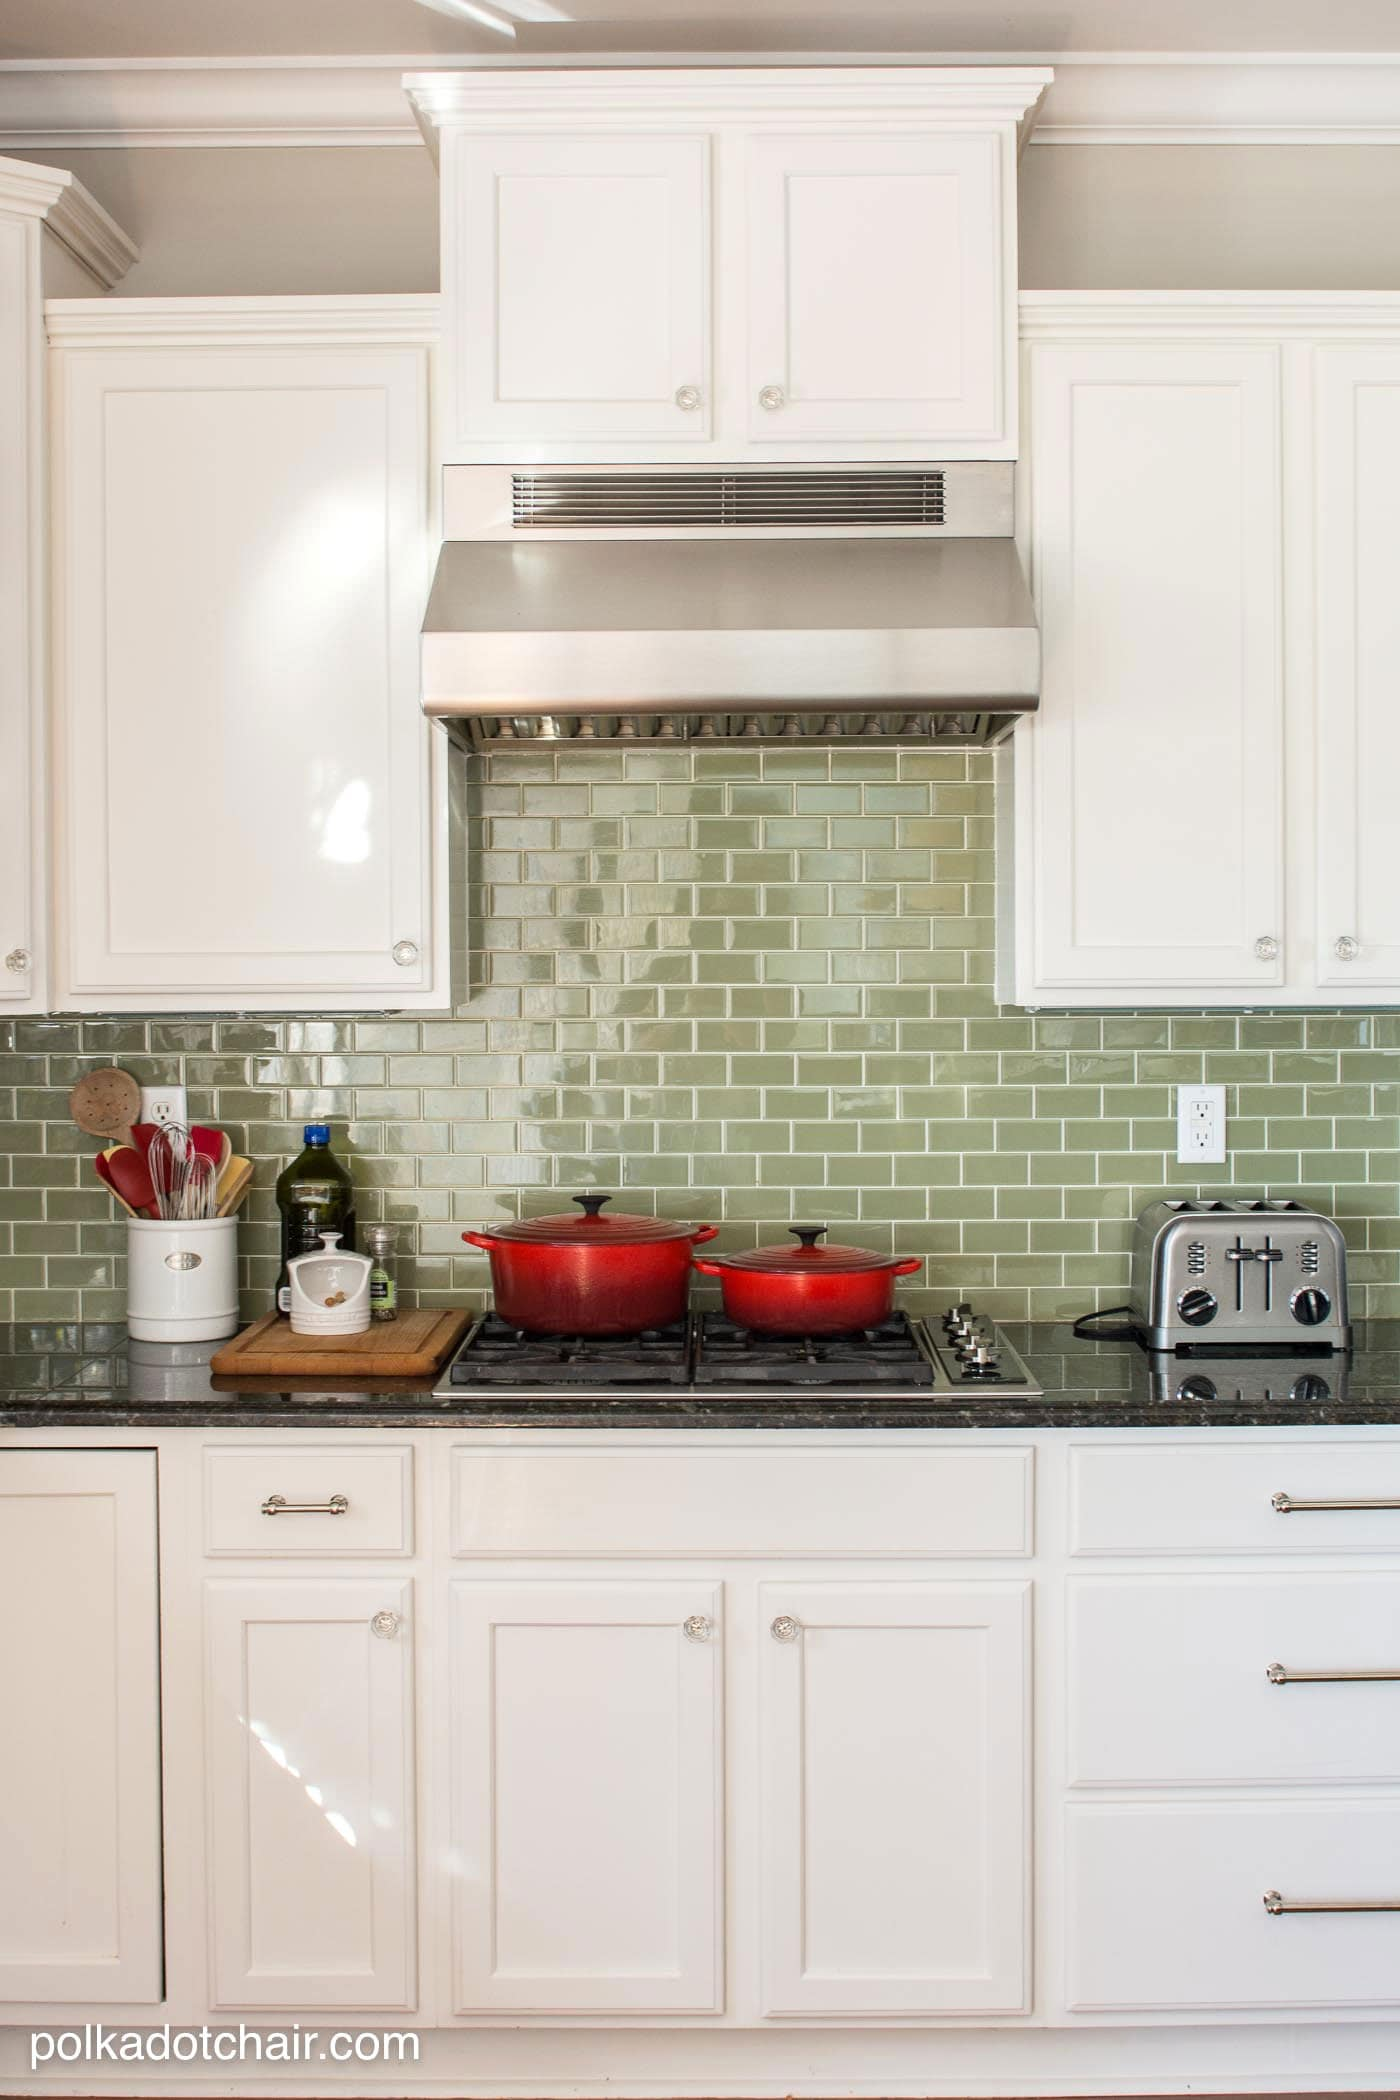 Green Glass Tile Backsplash & Before and After Photos of a Kitchen that had it's Cabinets Painted White- lots of great ideas for decorating a farmhouse style kitchen!